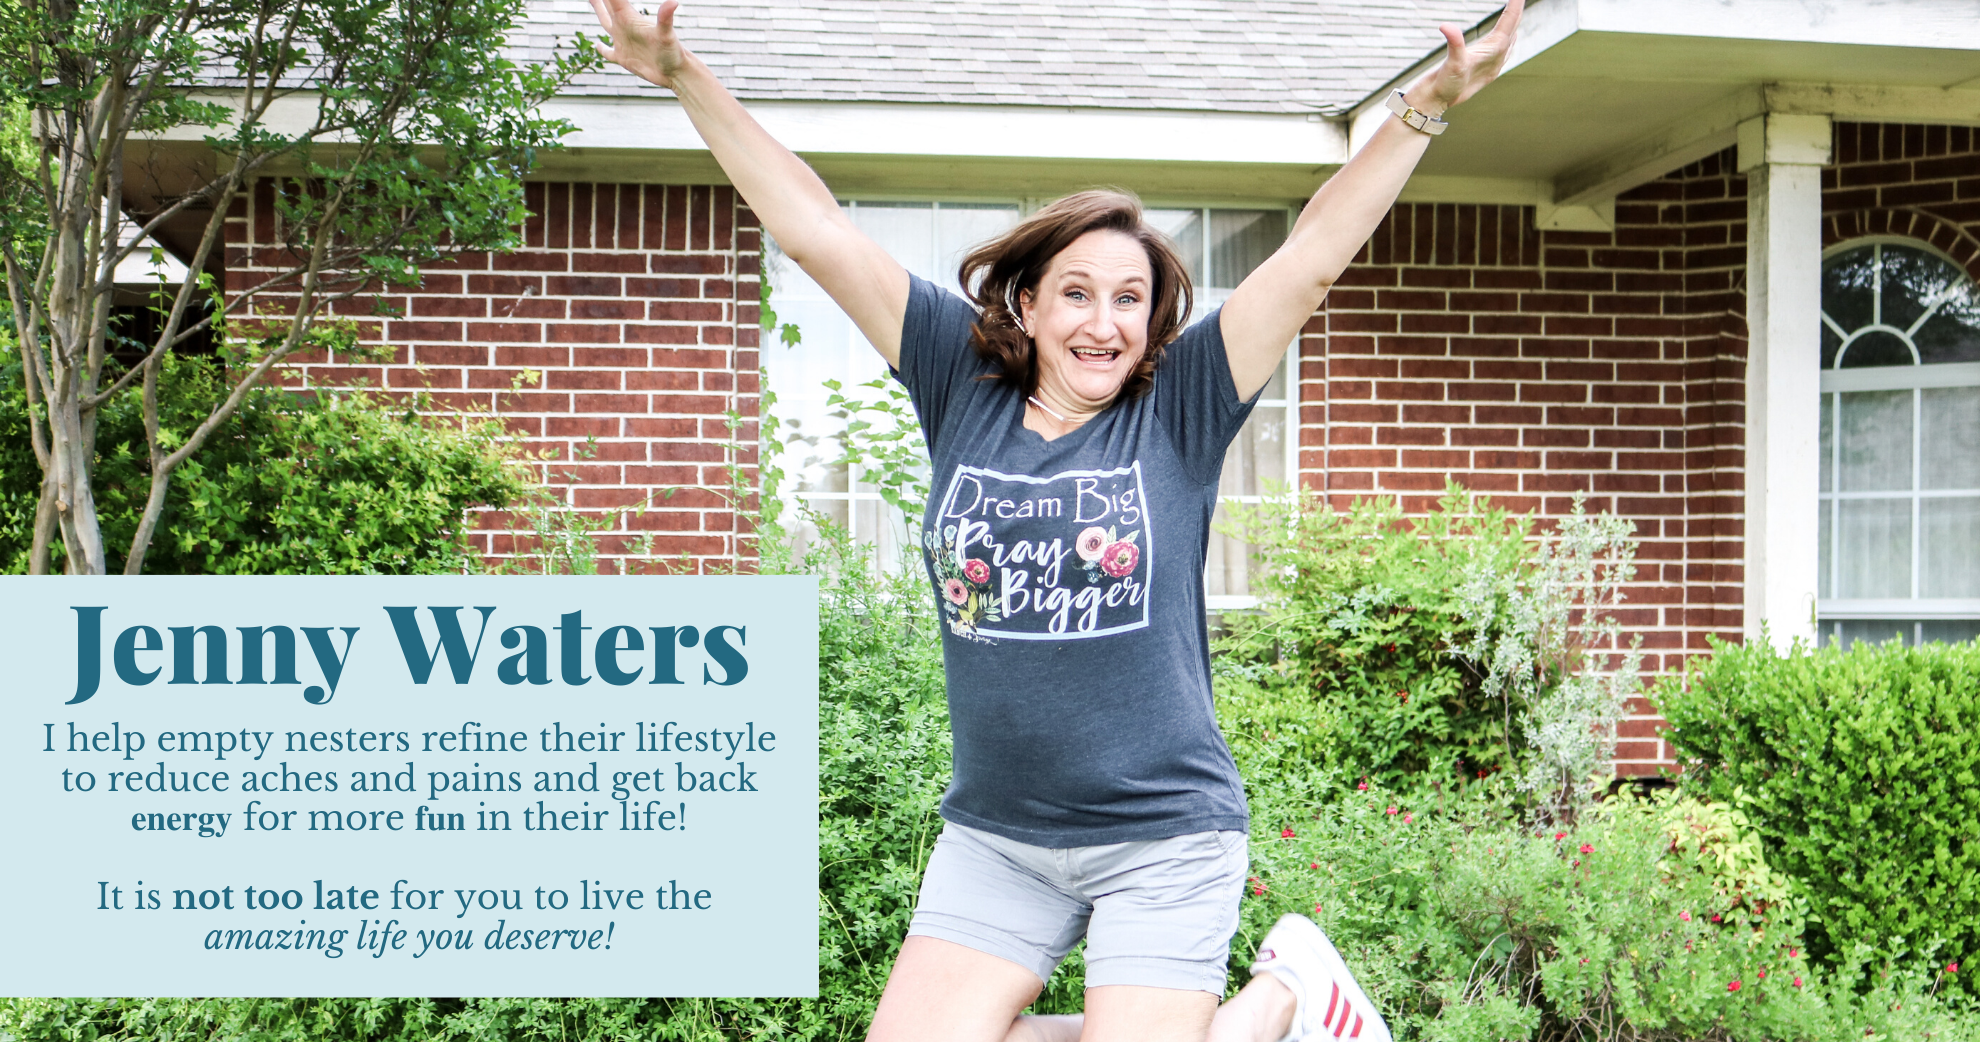 Jenny Waters | I help empty nesters refine their lifestyle to reduce aches and pains and get back 𝐞𝐧𝐞𝐫𝐠𝐲 for more 𝐟𝐮𝐧 in their life!